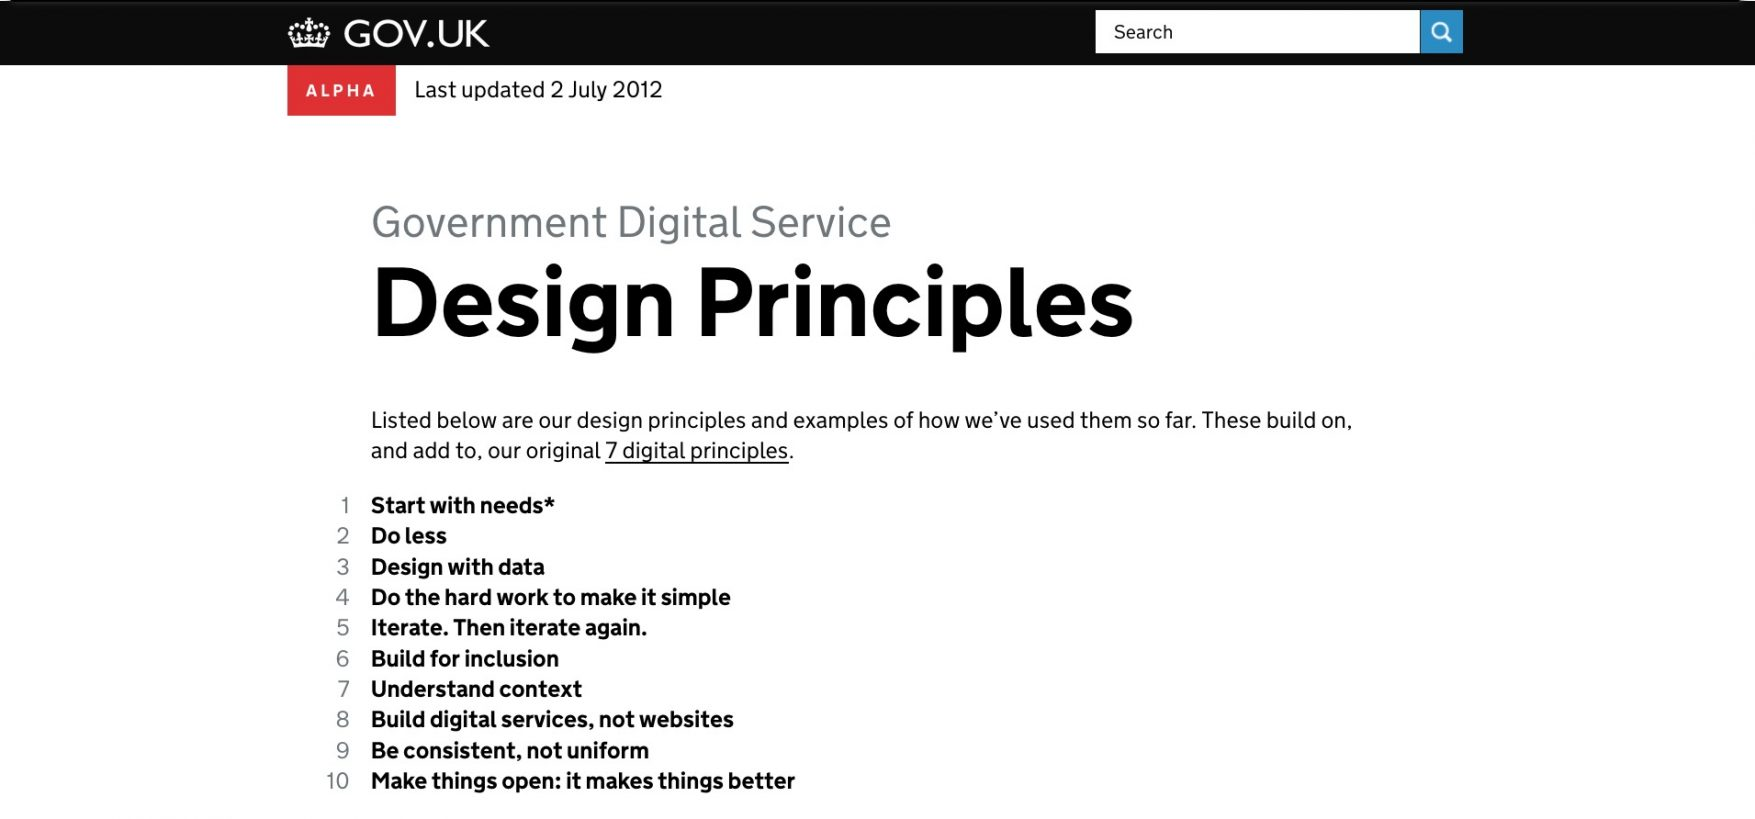 Screenshot of the Design Principles alpha showing the list of ten design principles.